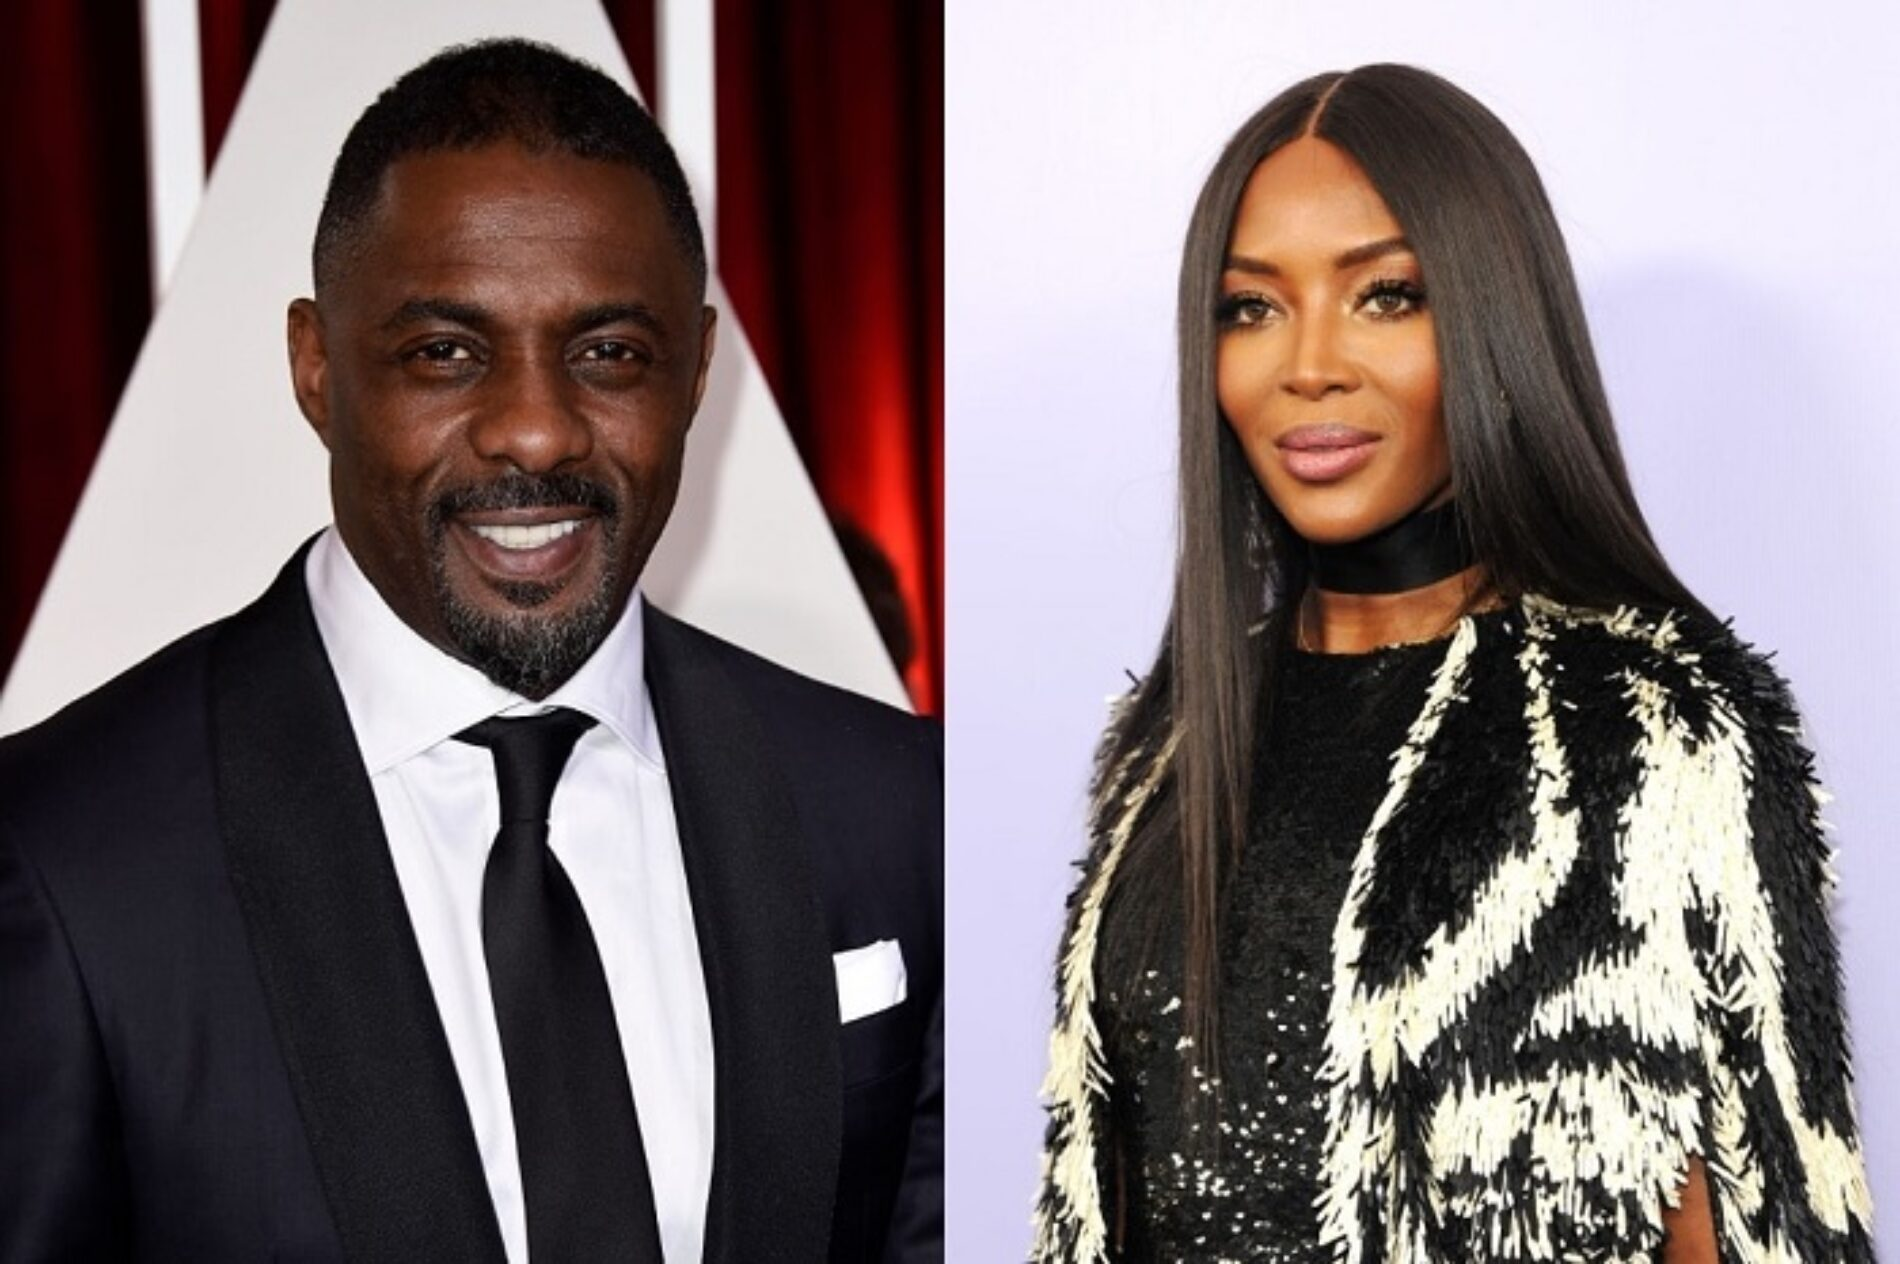 Idris Elba And Naomi Campbell Sign Letter Supporting Ghanaian LGBTQ+ Community, As President Nana Akufo-Addo Rules Out Legalization Of Gay Rights